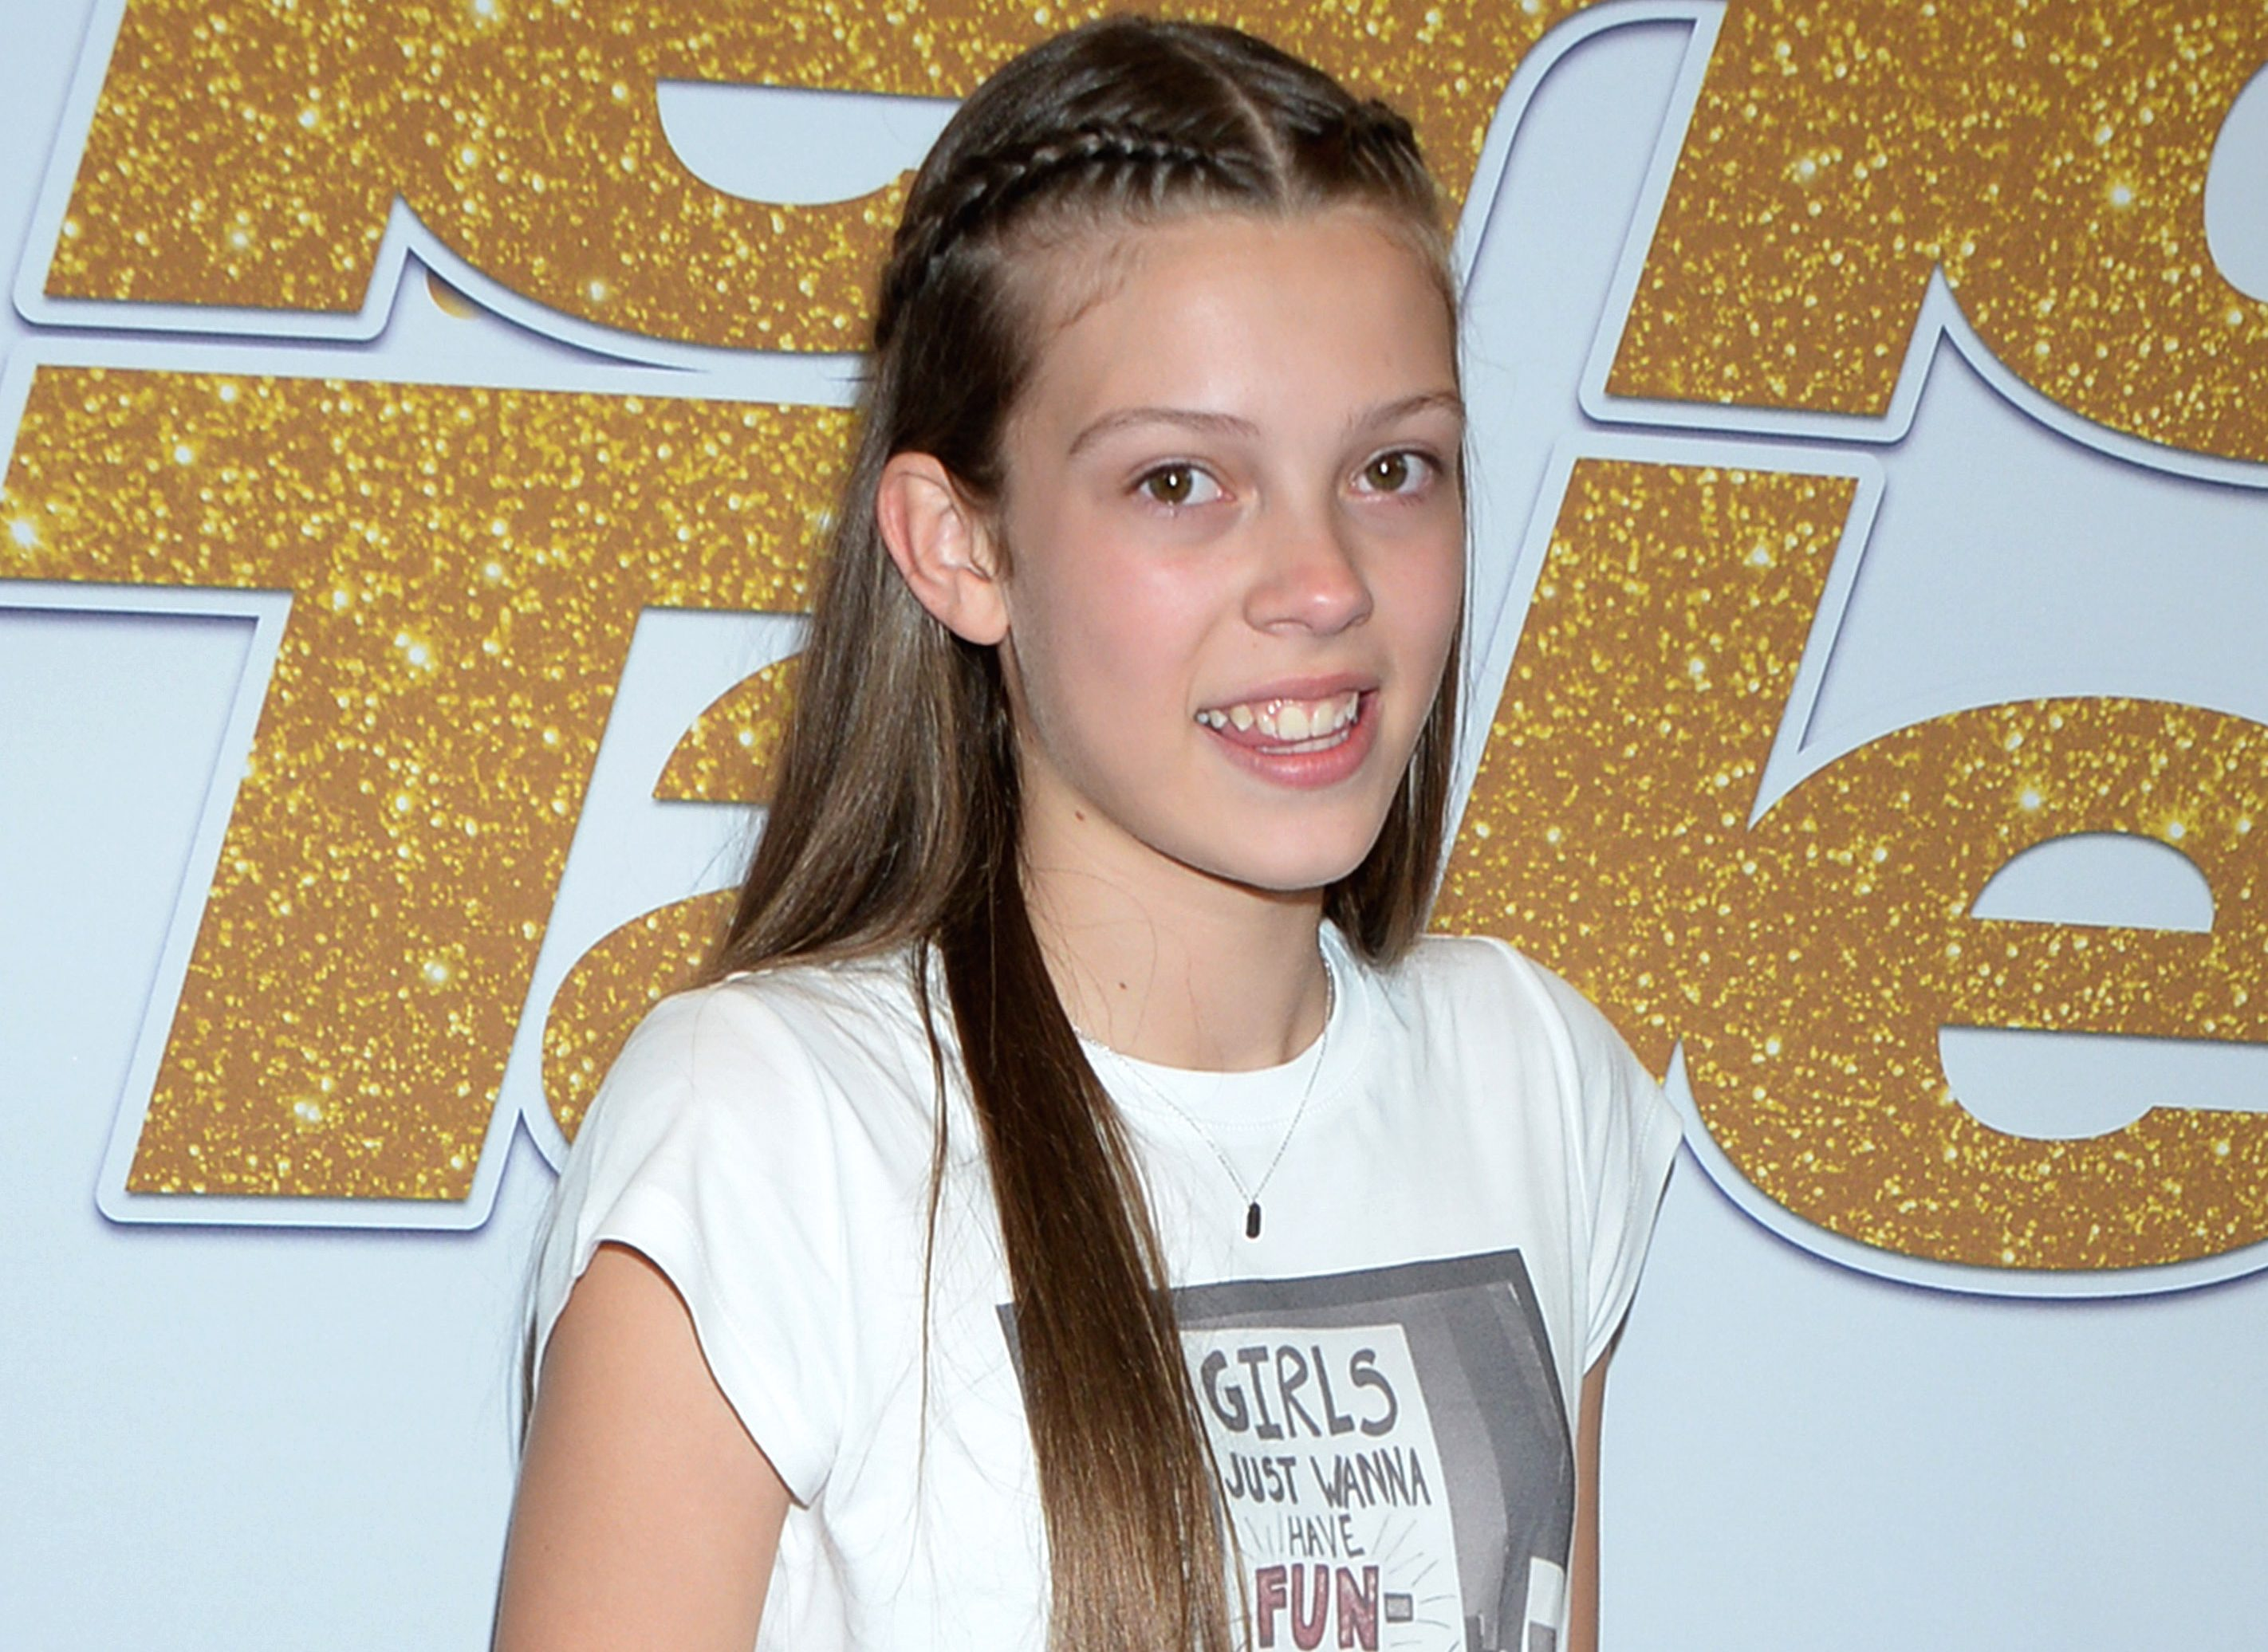 British schoolgirl Courtney Hadwin 'could make six-figures' after America's Got Talent